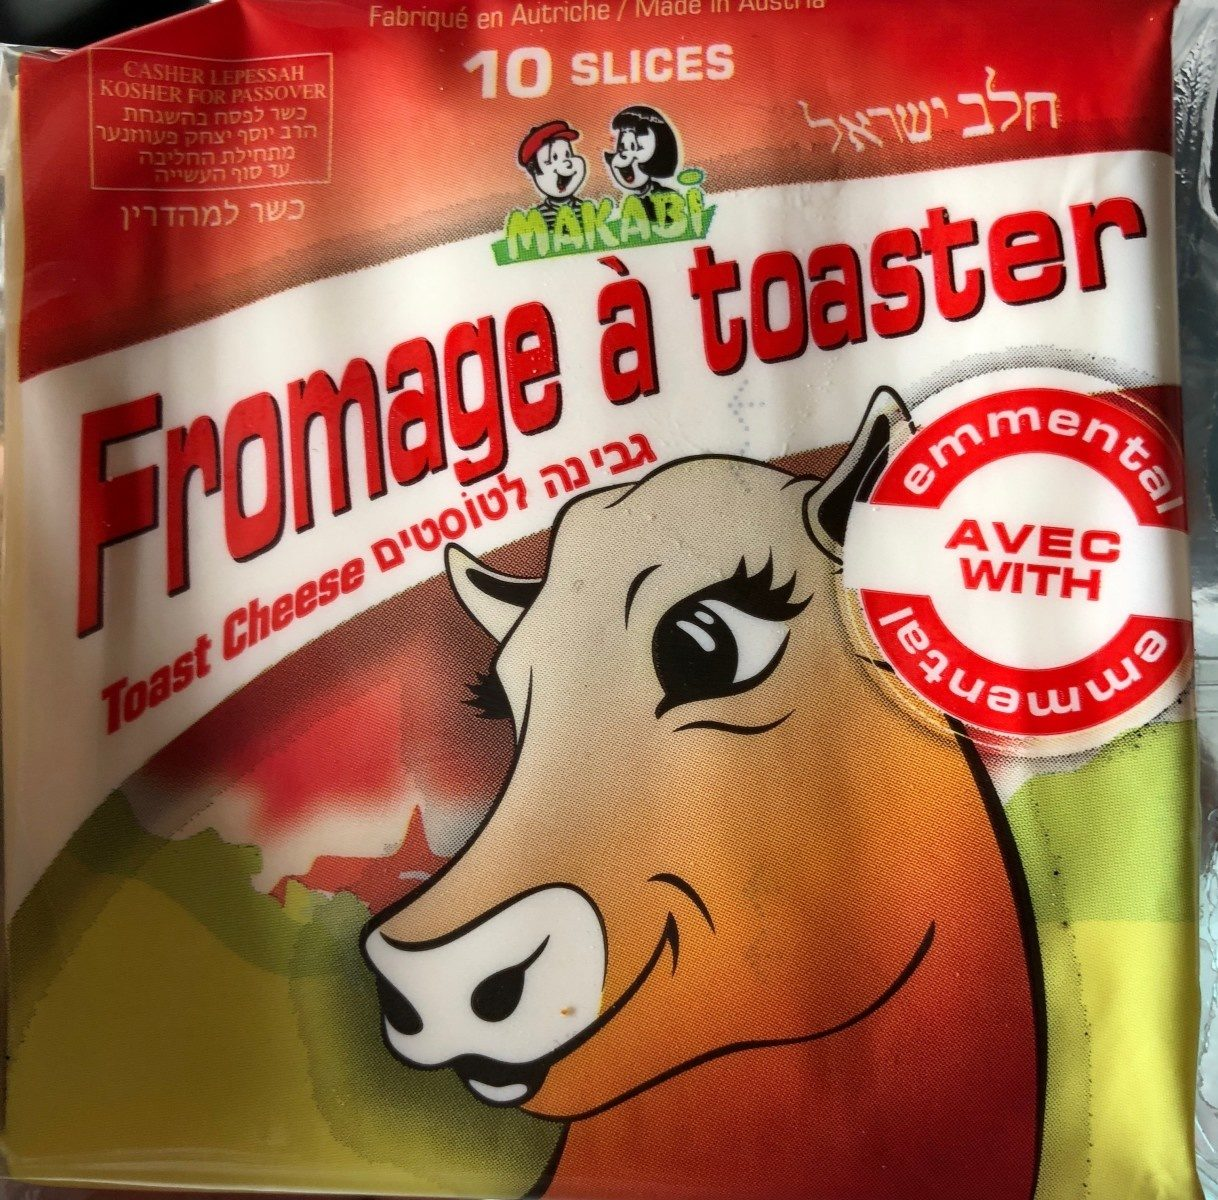 10 Slices Toast Cheese - Emmental Taste - Product - fr